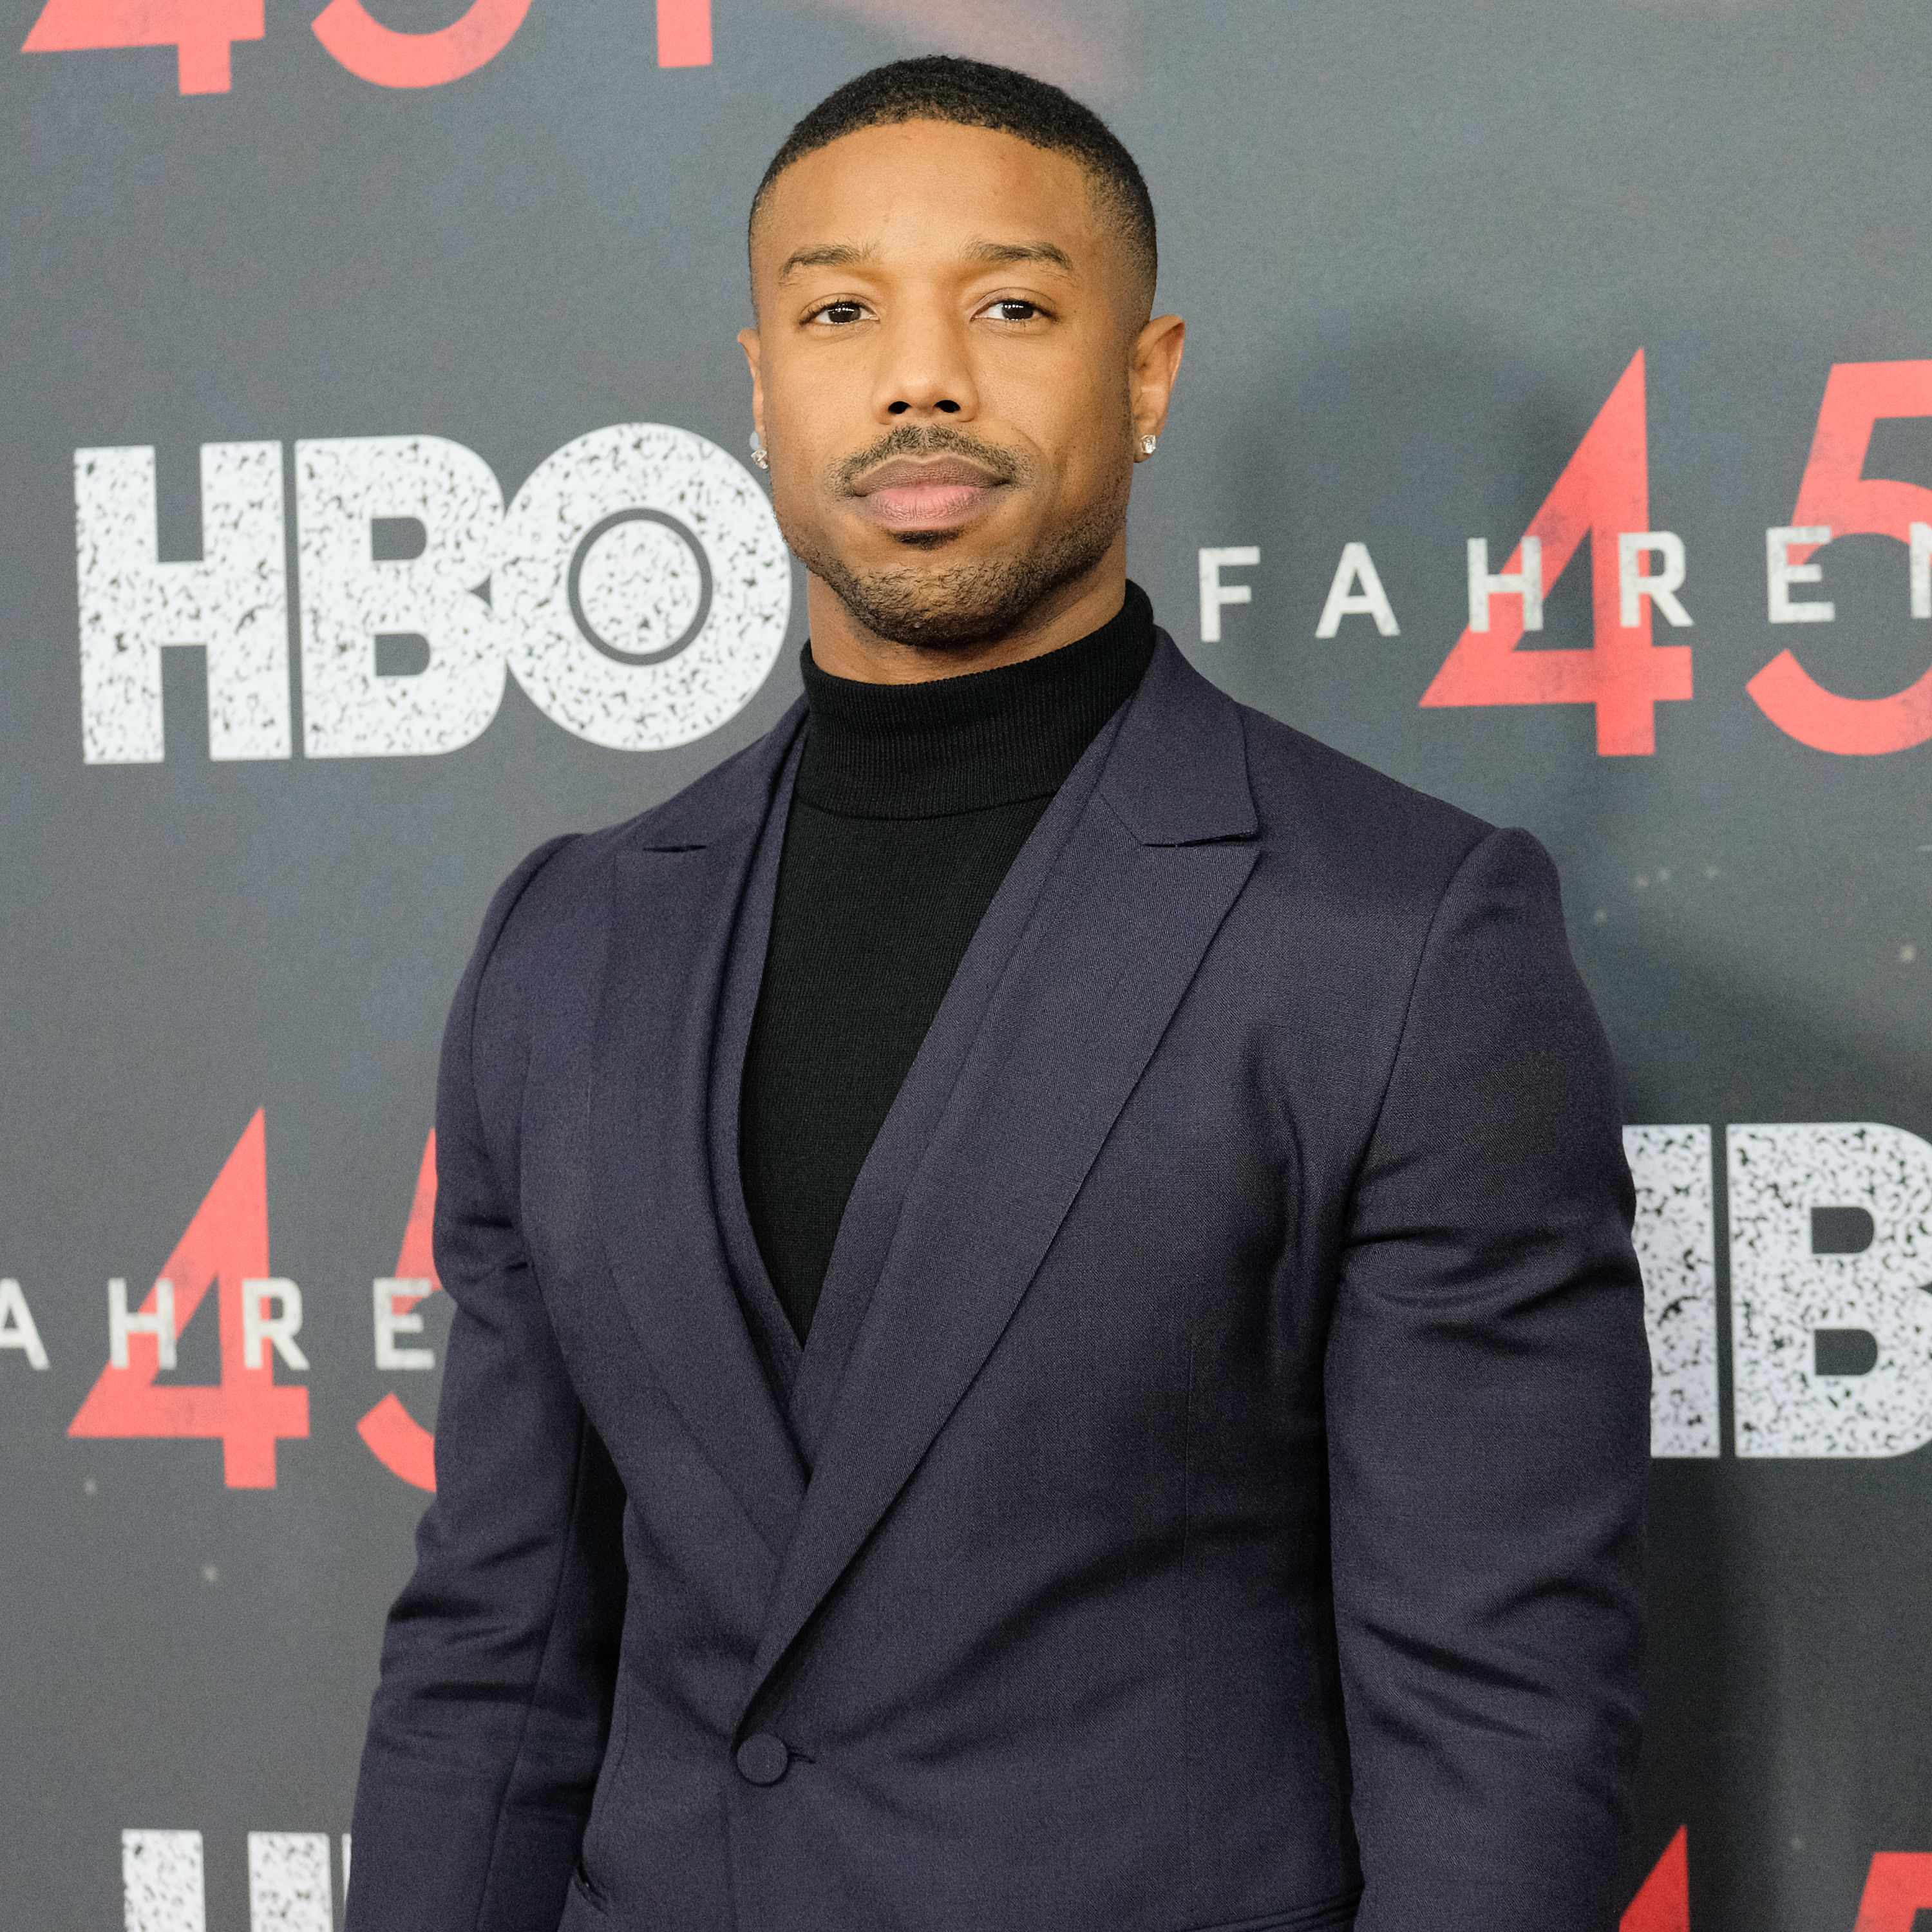 """Michael B. Jordan at the """"Fahrenheit 451"""" New York premiere at NYU Skirball Center on May 8, 2018 